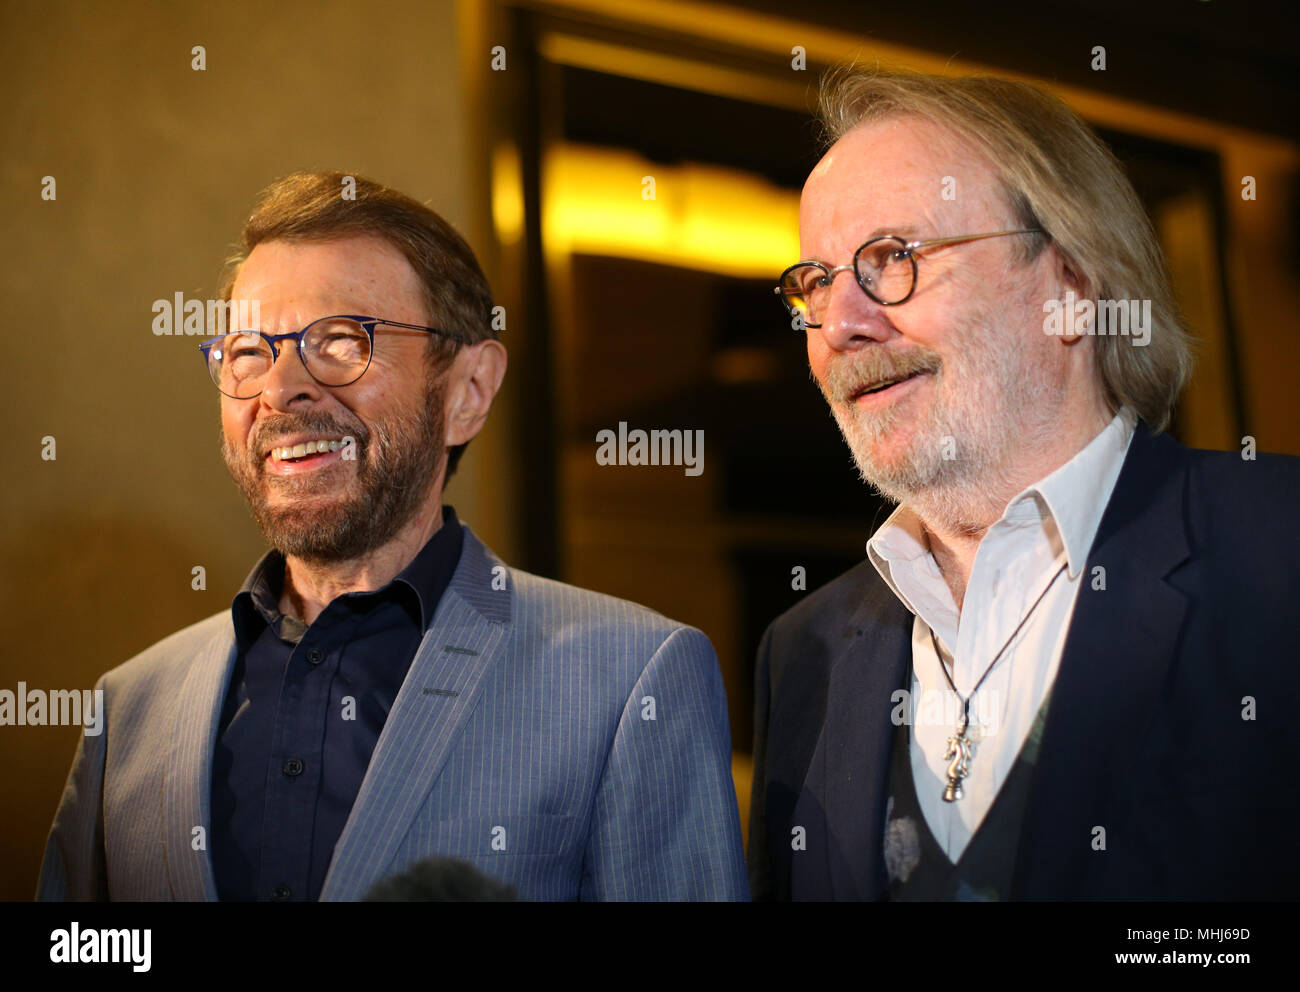 bjorn-ulvaeus-and-benny-andersson-from-a